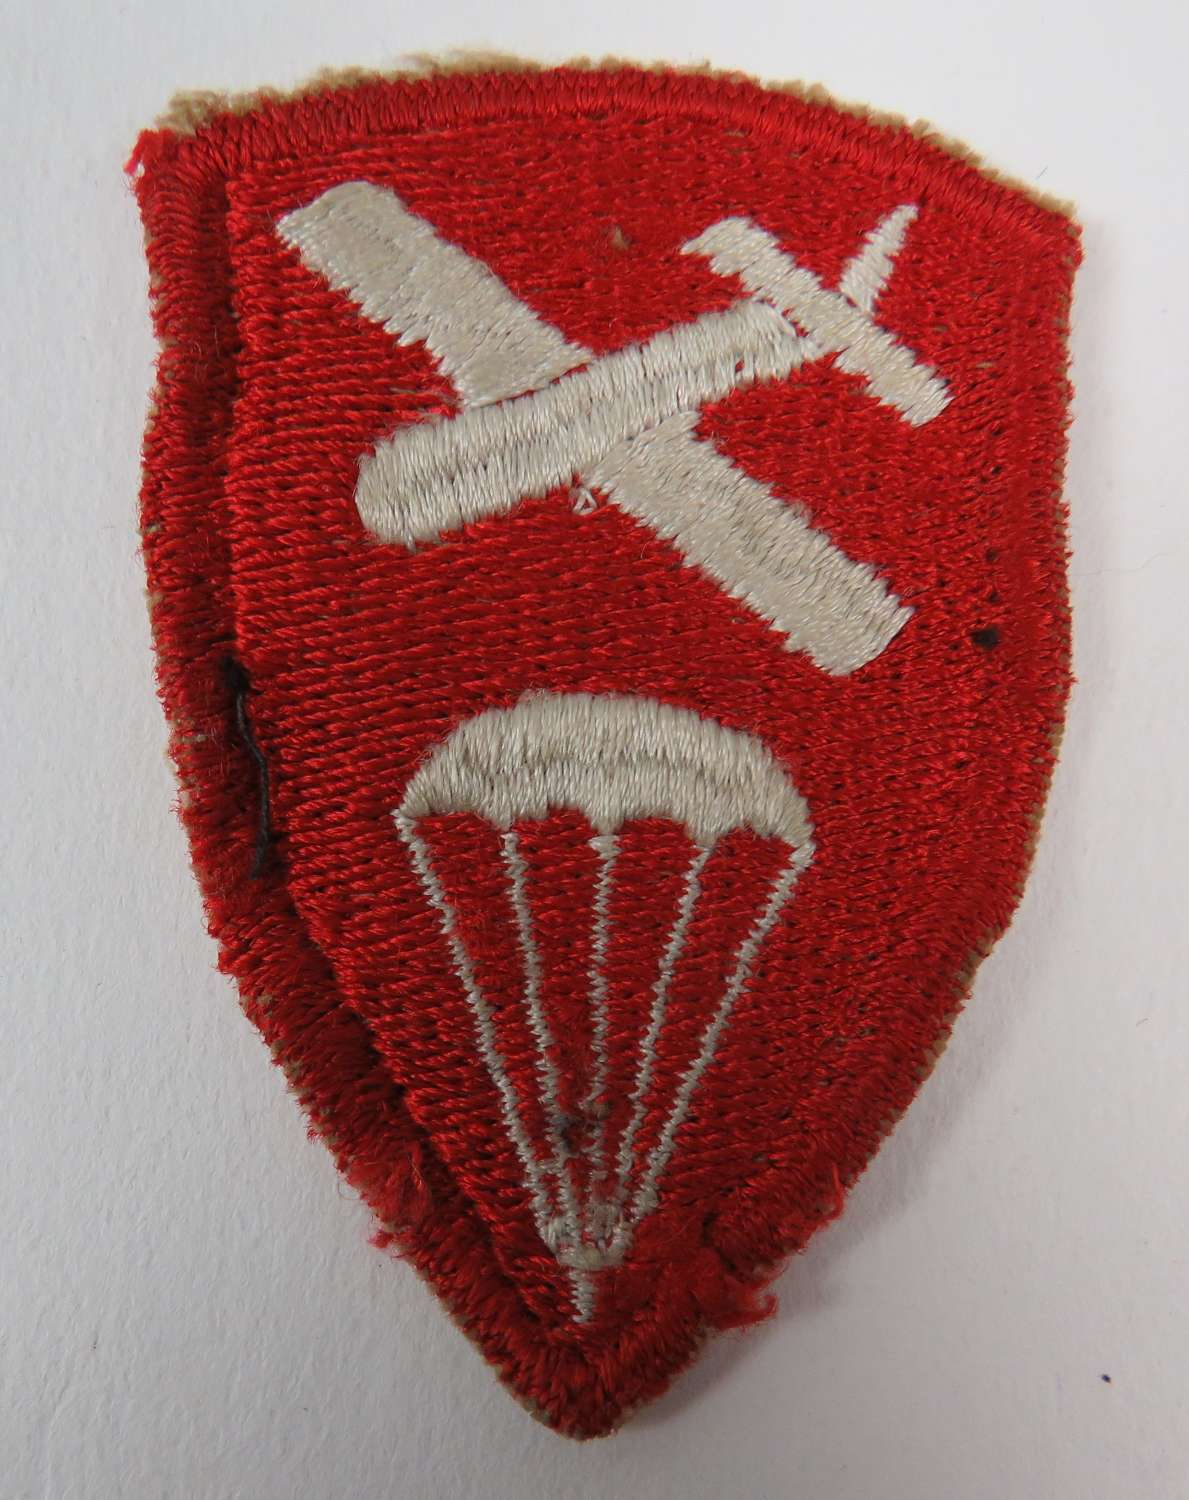 American Airborne Command Formation Badge